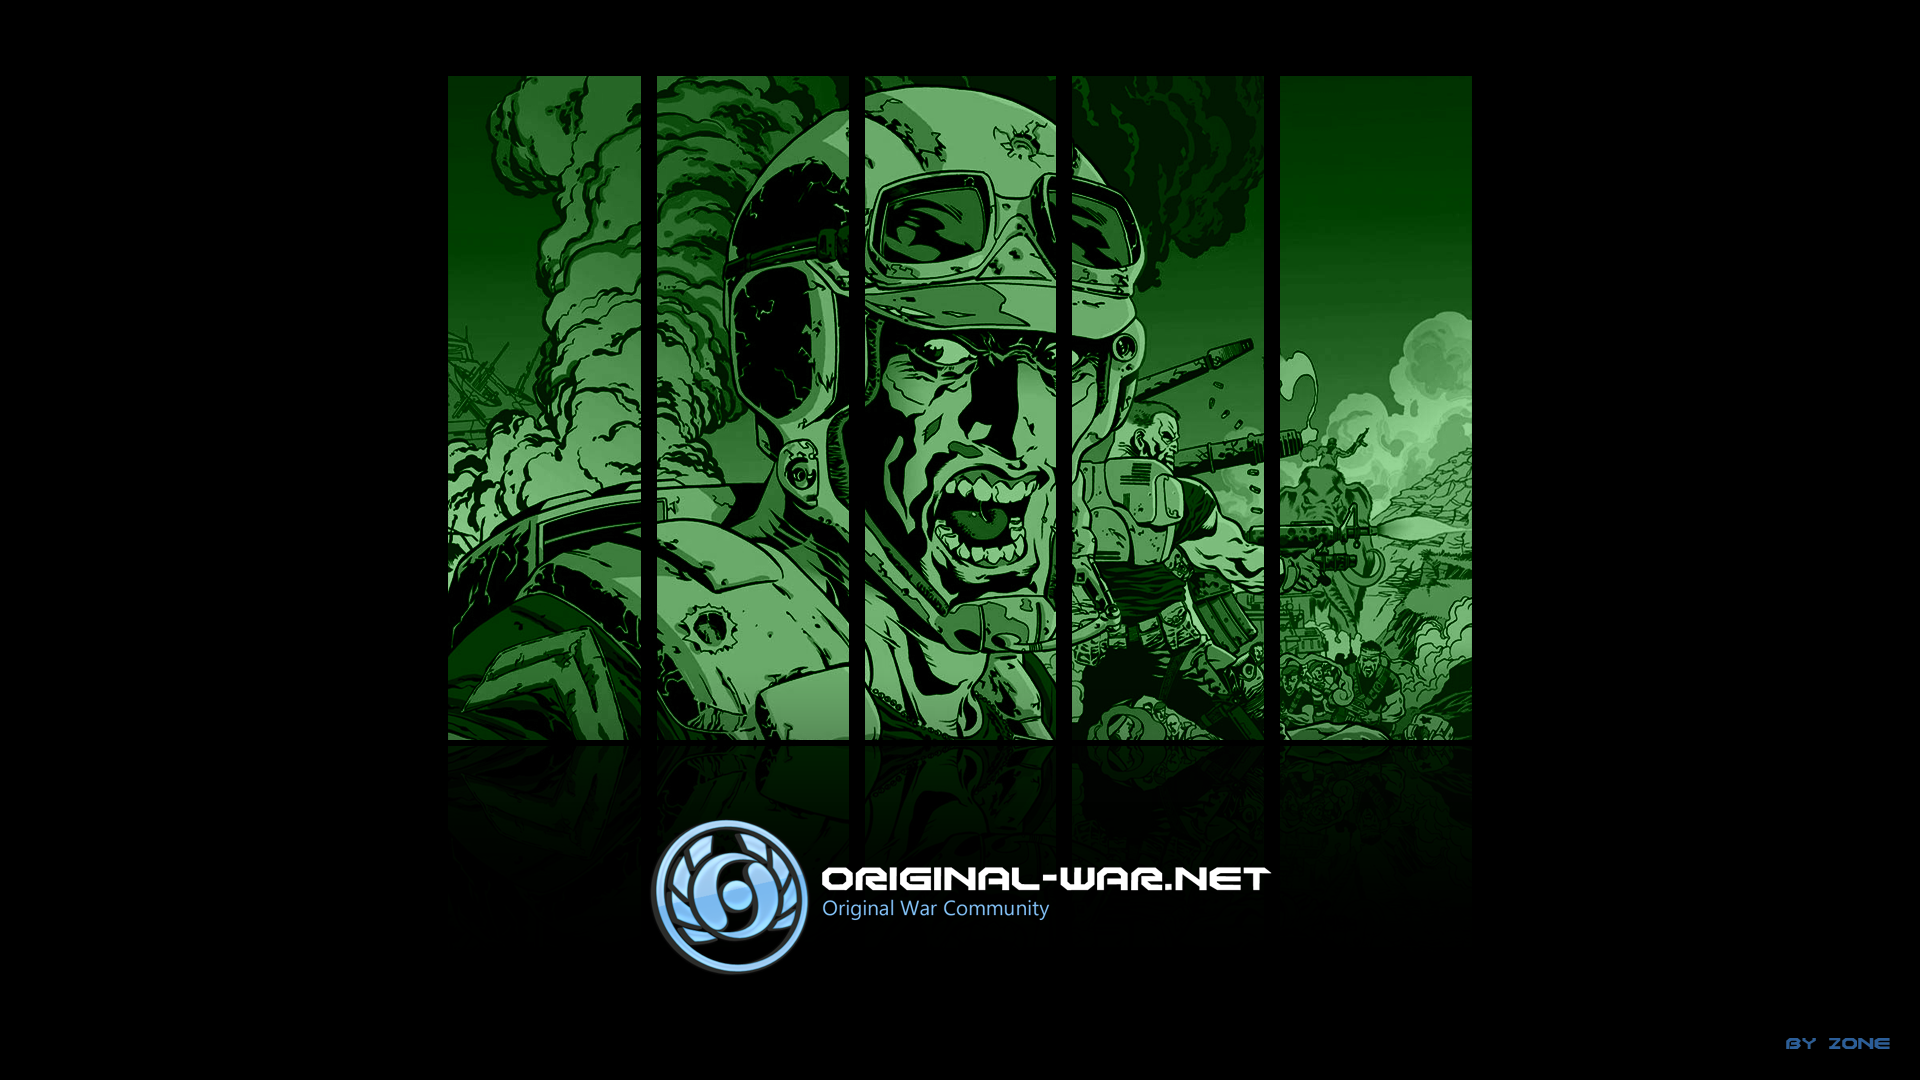 Original-War.net Wallpaper #10 1920x1080